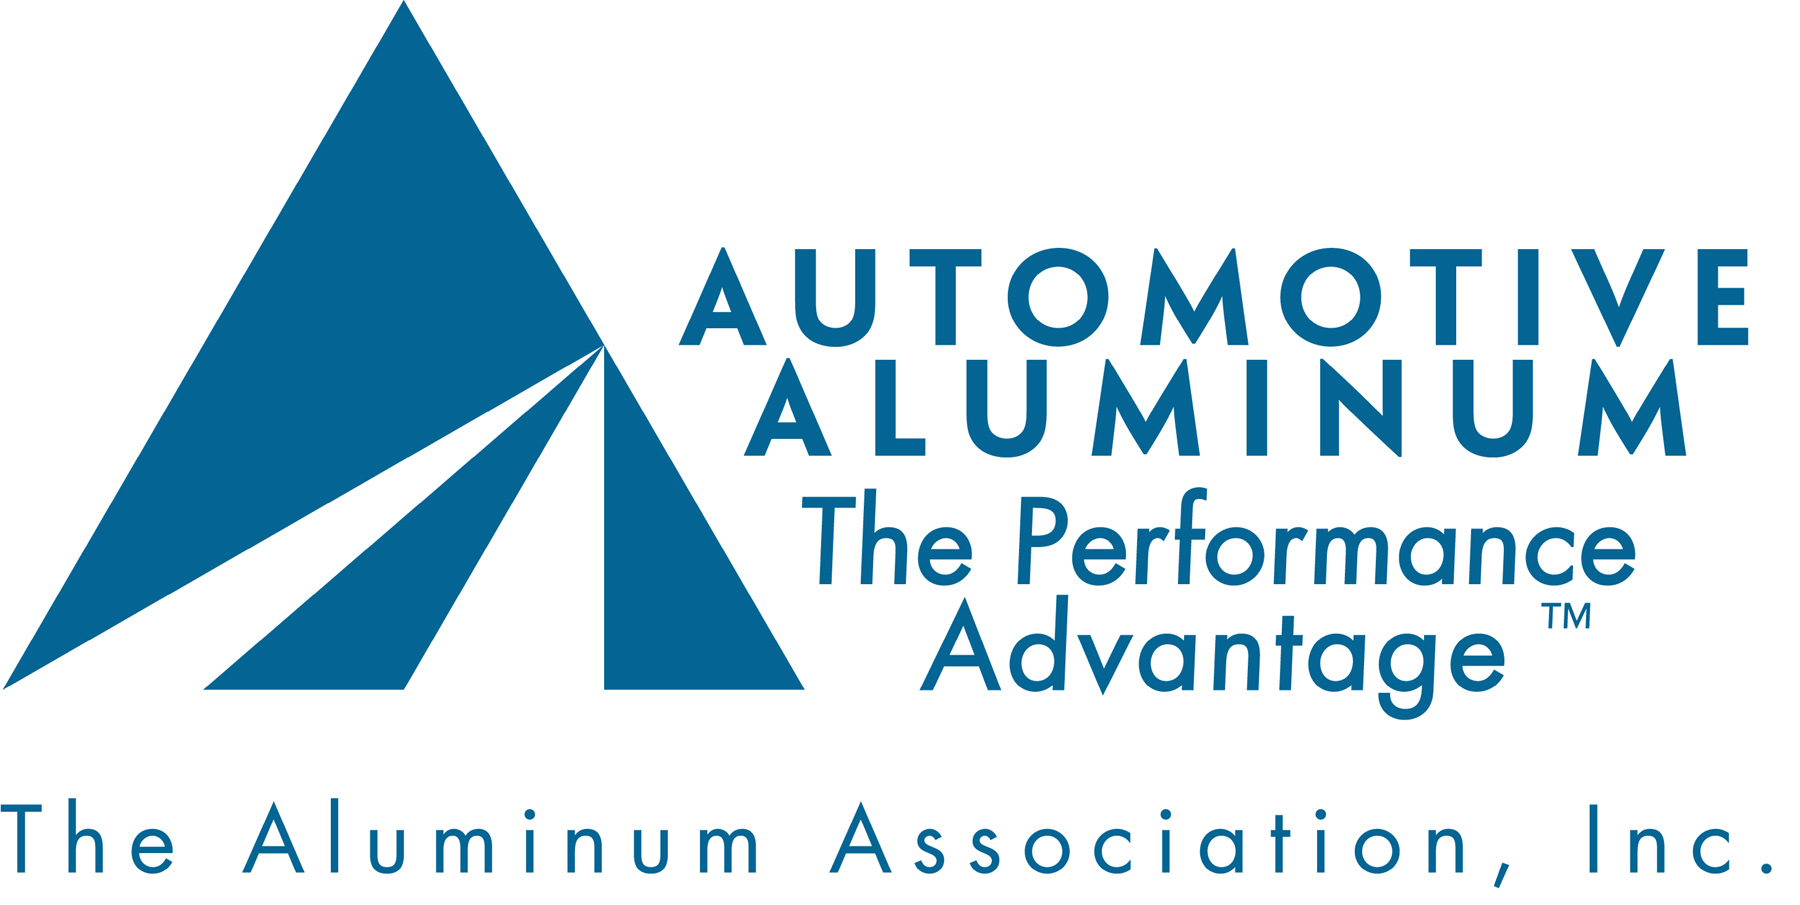 Aluminum in Transportation